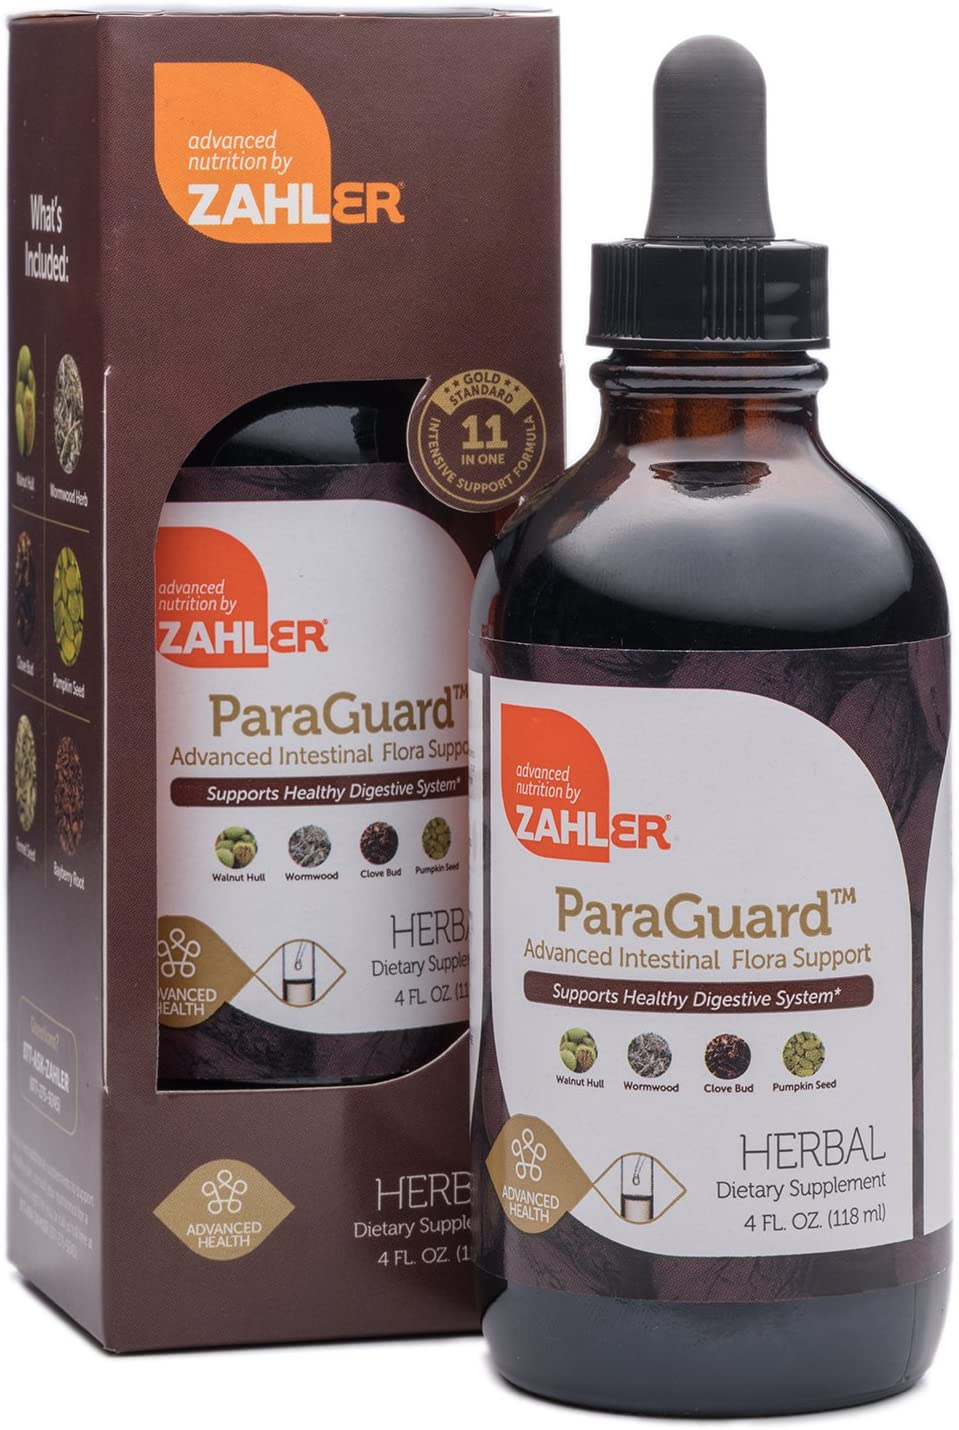 Zahler ParaGuard, Advanced Digestive Cleanse, Intestinal Support for Humans, Contains Wormwood, Certified Kosher 4OZ